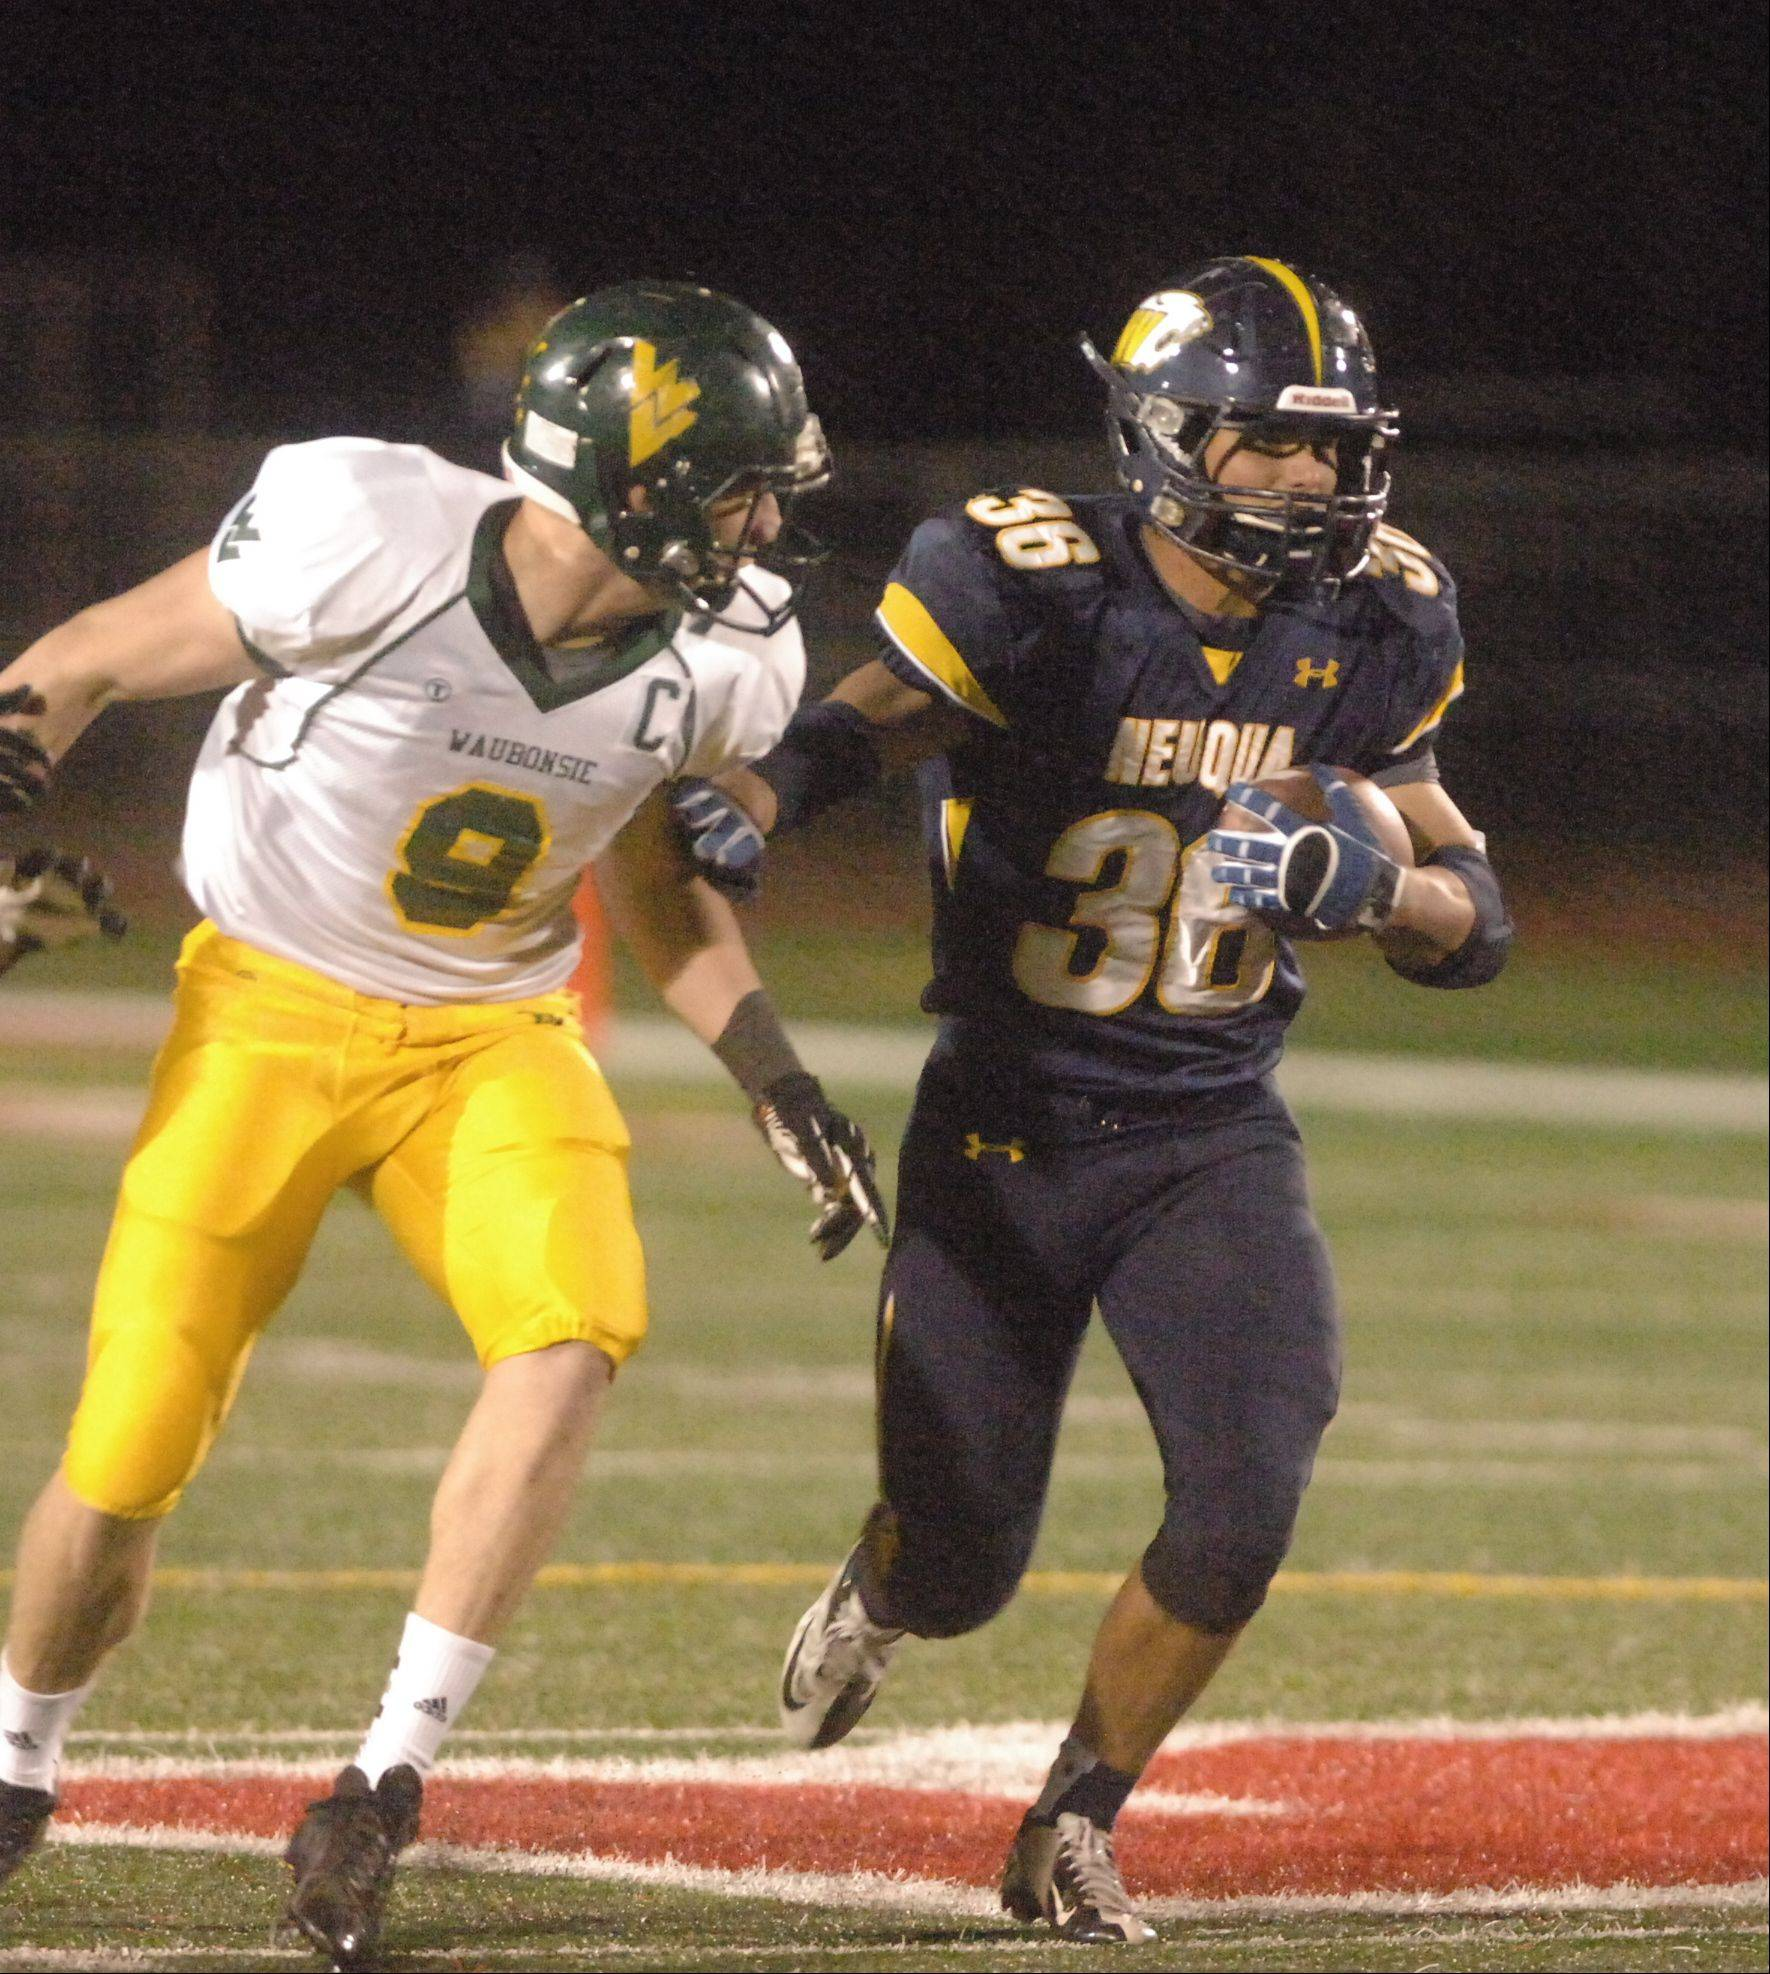 Photos from the Neuqua Valley vs. Waubonsie Valley football game Friday, October 5 at North Central College in Naperville.